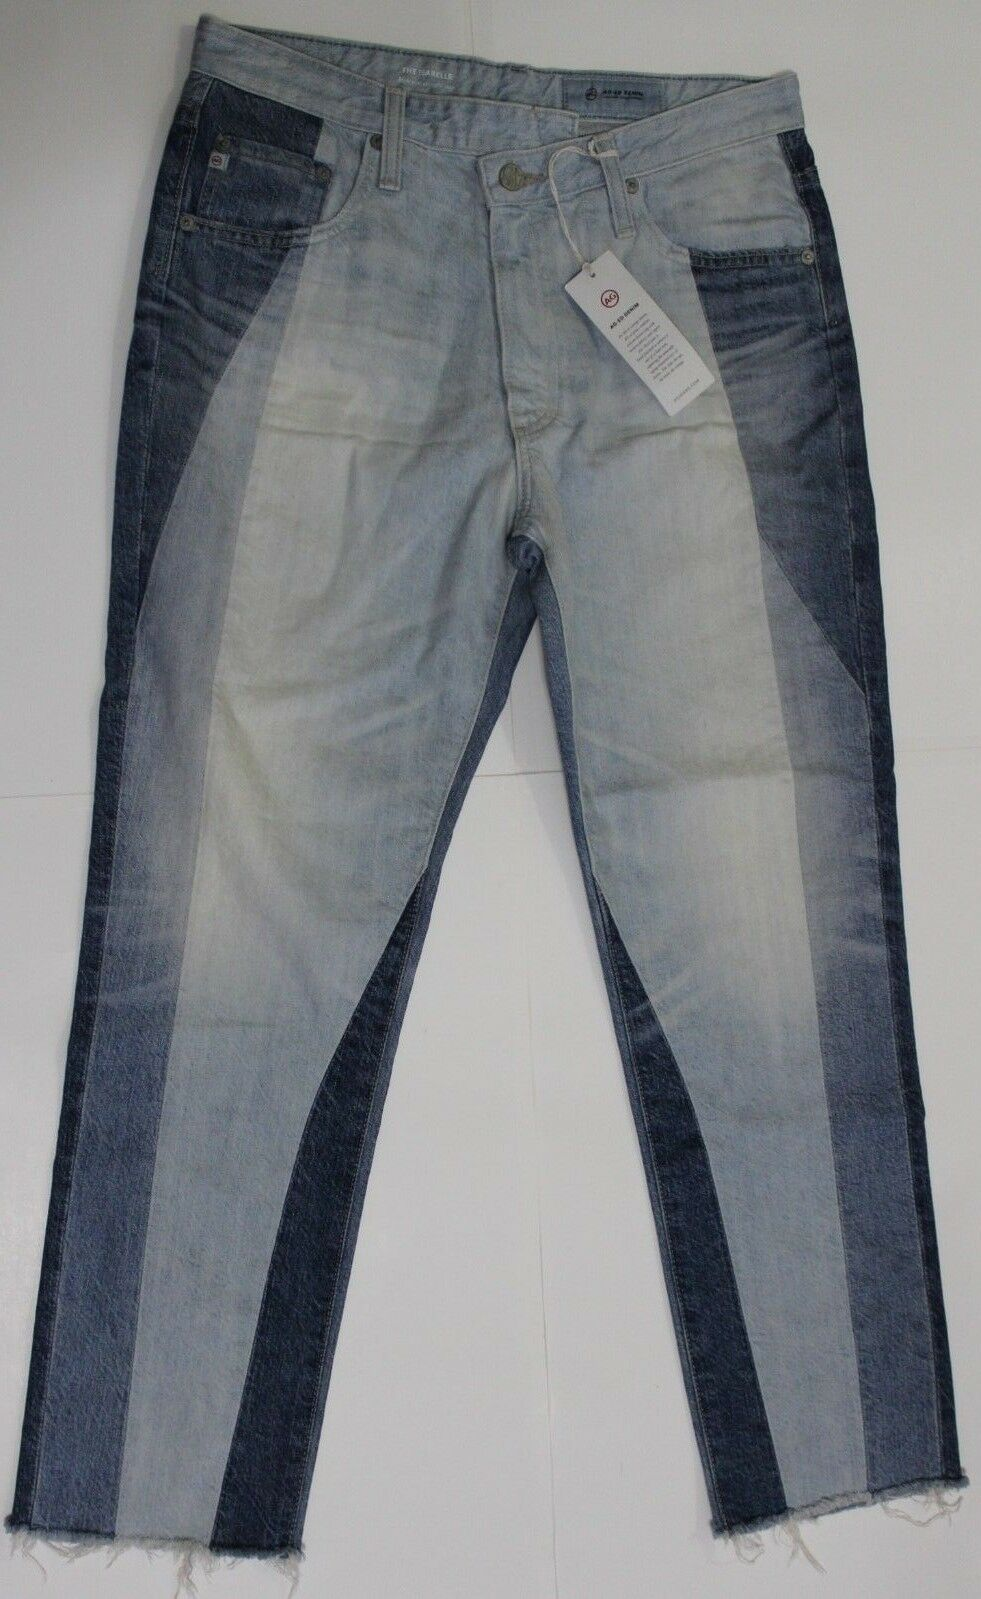 355 AG ADRIANO goldSCHMIED THE ISABELLED HIGH RISE STRAIGHT CROP JEANS SZ 29